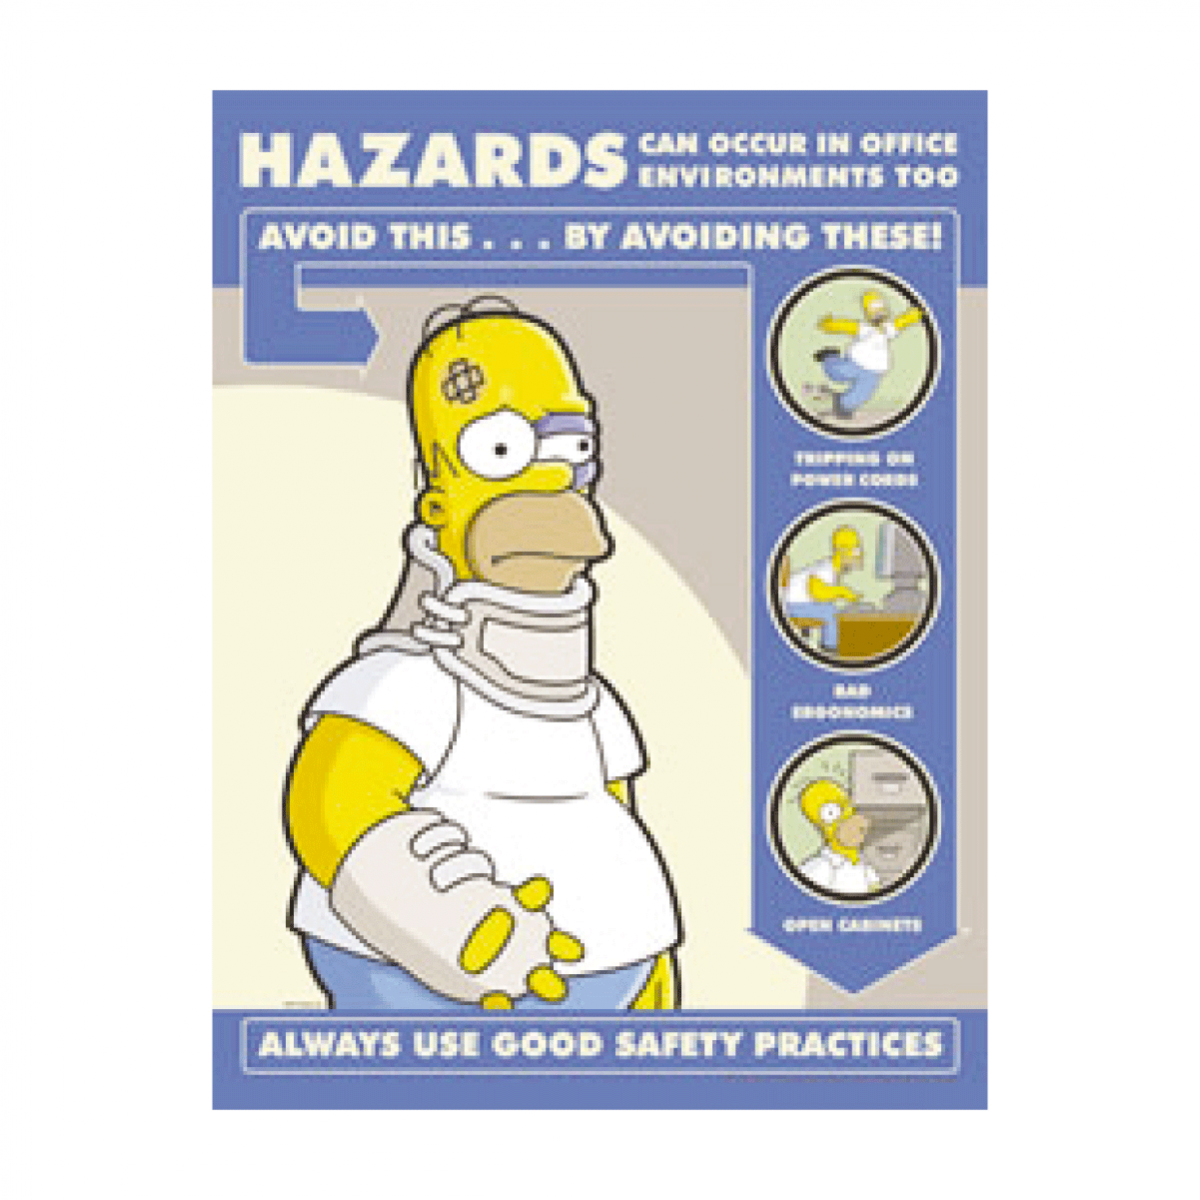 simpsons poster | Simpsons Hazards In Office Environment ...